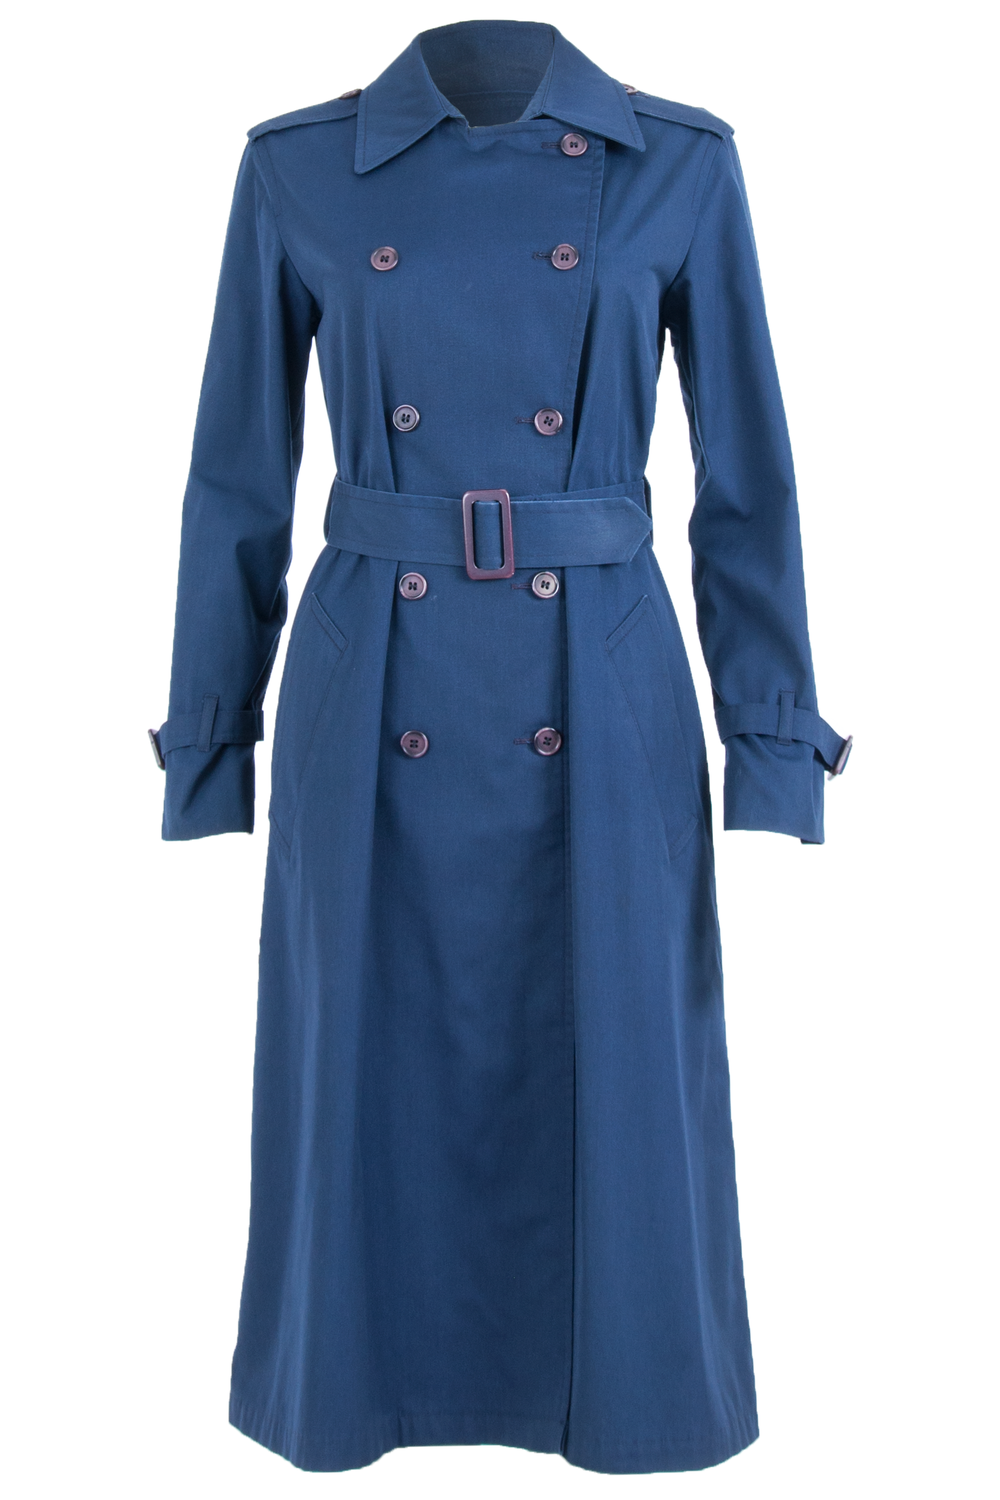 Vintage blue coat with double breasted button closure and purple belted waist